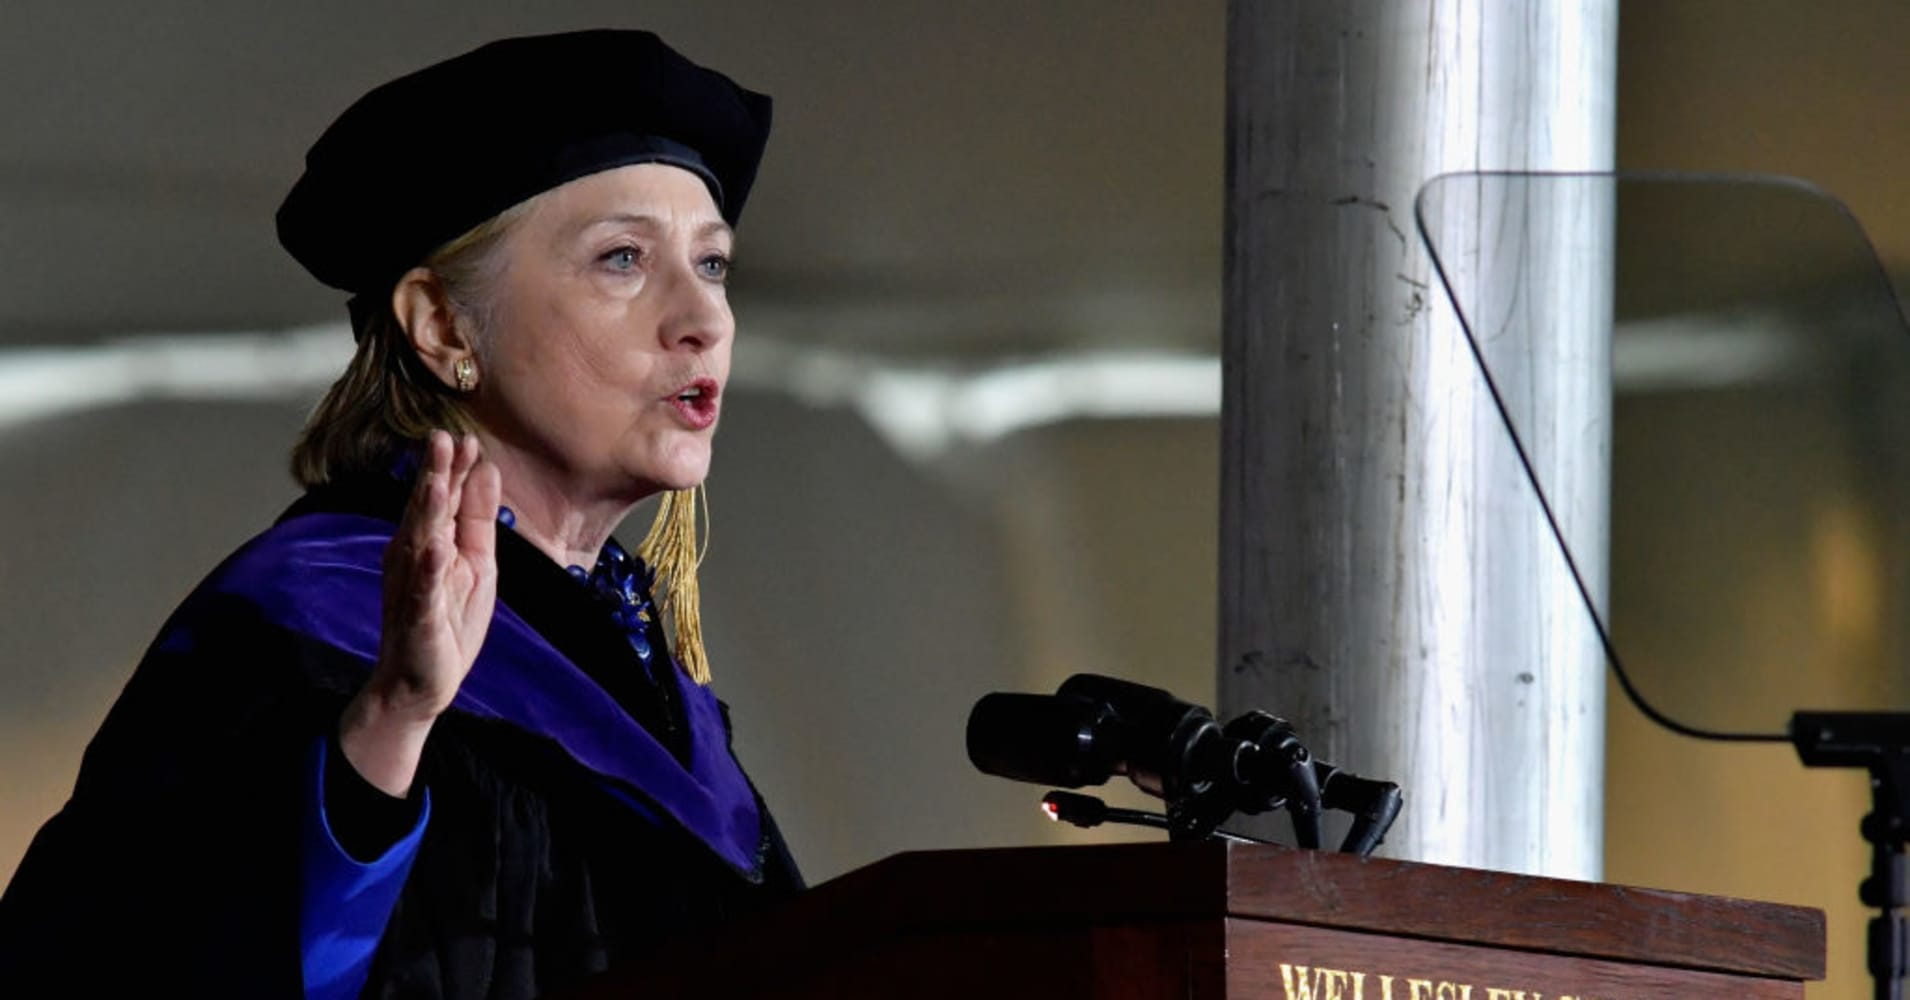 Hillary Clinton gave the commencement address at the Wellesley College 2017 166th on May 26, 2017.